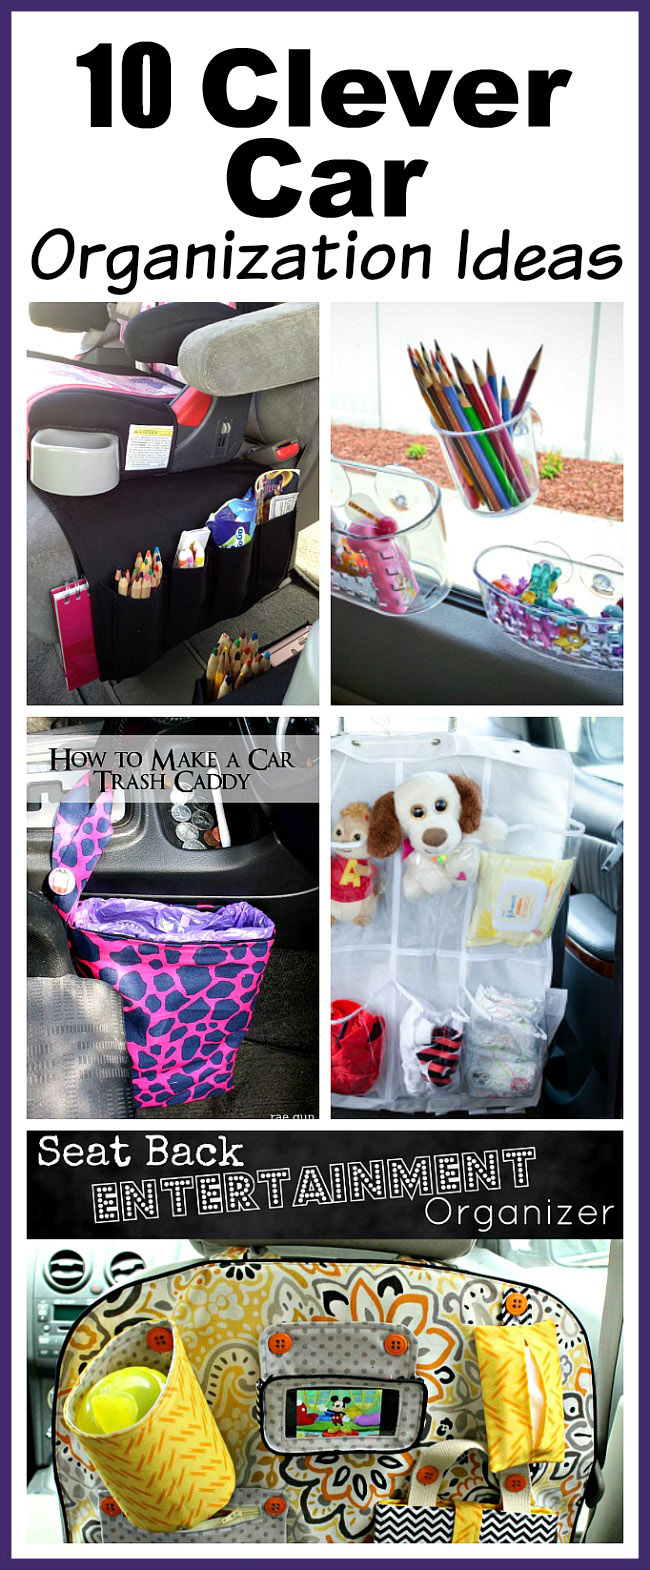 10 Clever Car Organization Ideas- You don't need to buy any fancy organizers to keep your car neat! Here are 10 clever (and inexpensive) car organization ideas! | car organizer, kids car organization ideas, backseat organizer, seat back organizer, DIY organization, easy organization, vehicle organizer, DIY car trash can, how to organize your car #organizingTips #carOrganization #organize #organization #ACultivatedNest